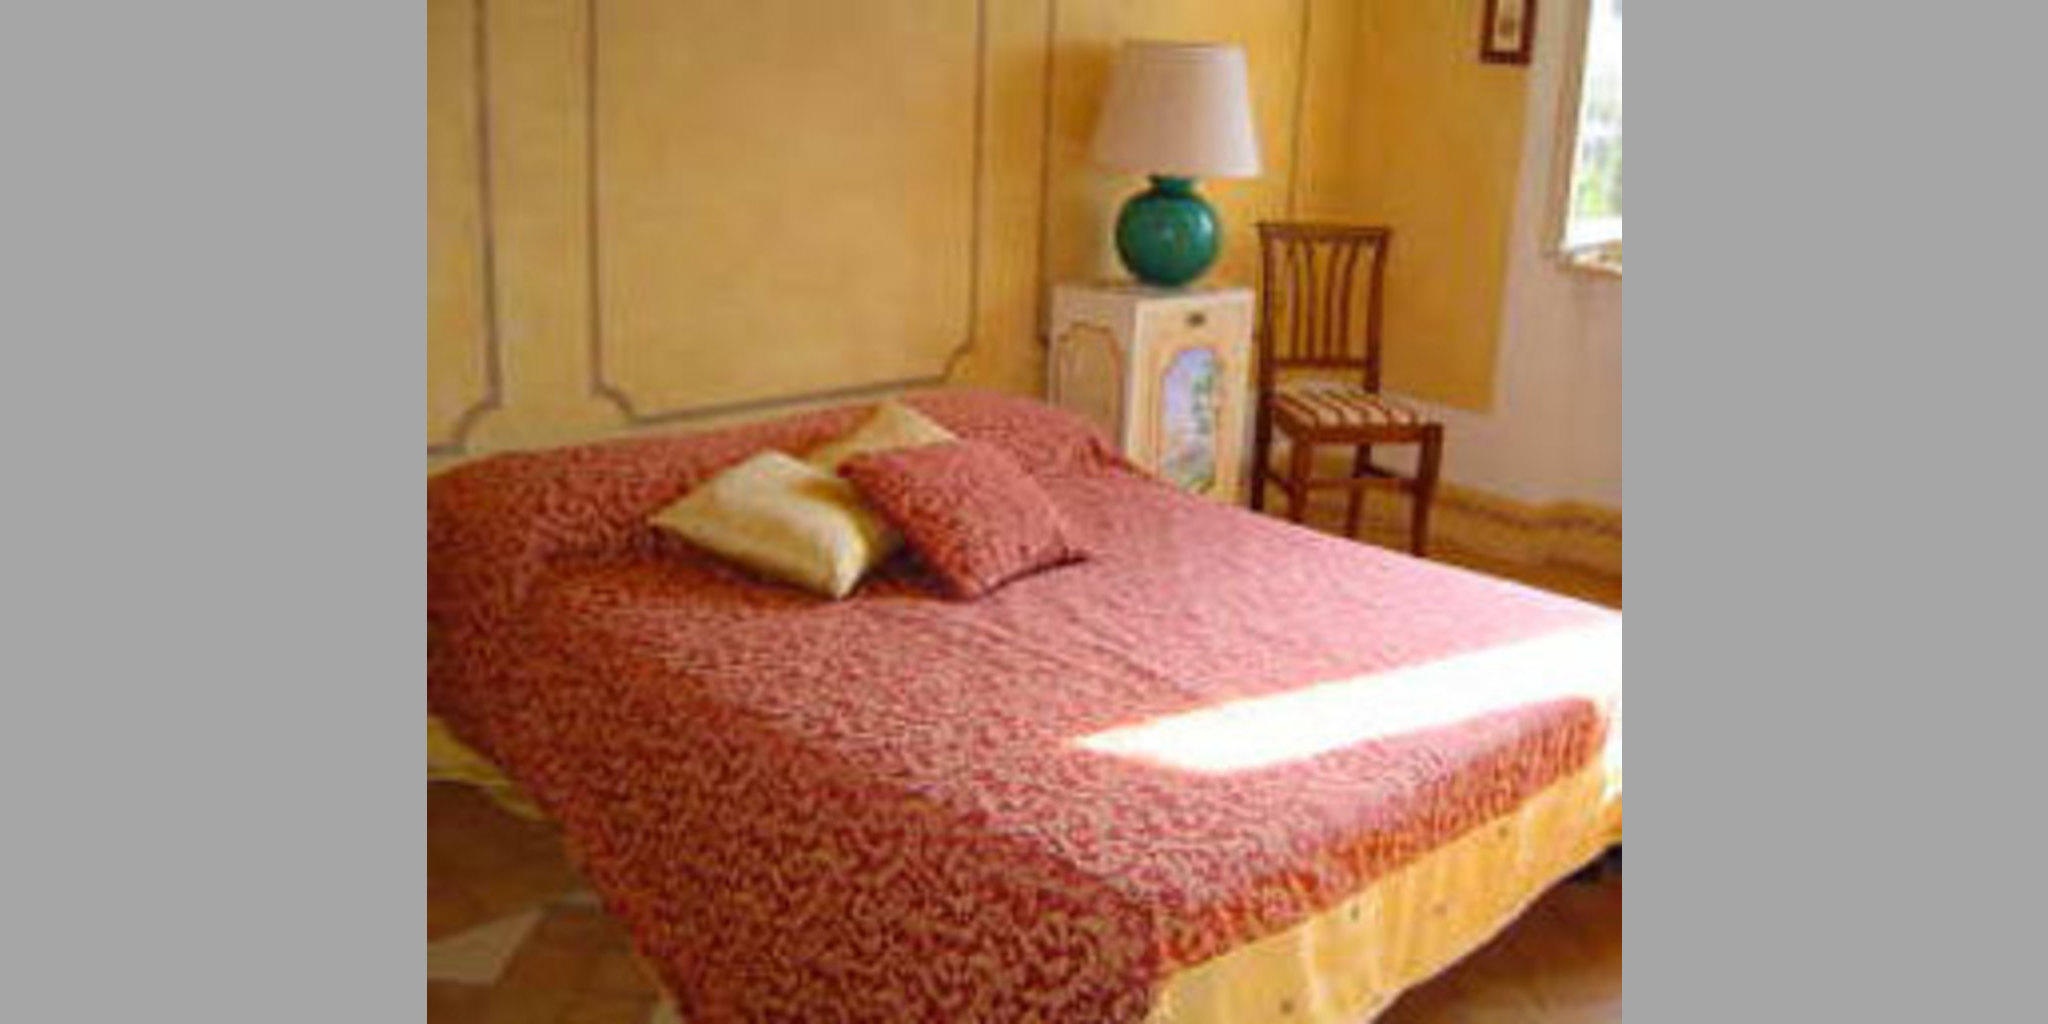 Bed & Breakfast Magliano Sabina - Vocabolo Mazzamora1